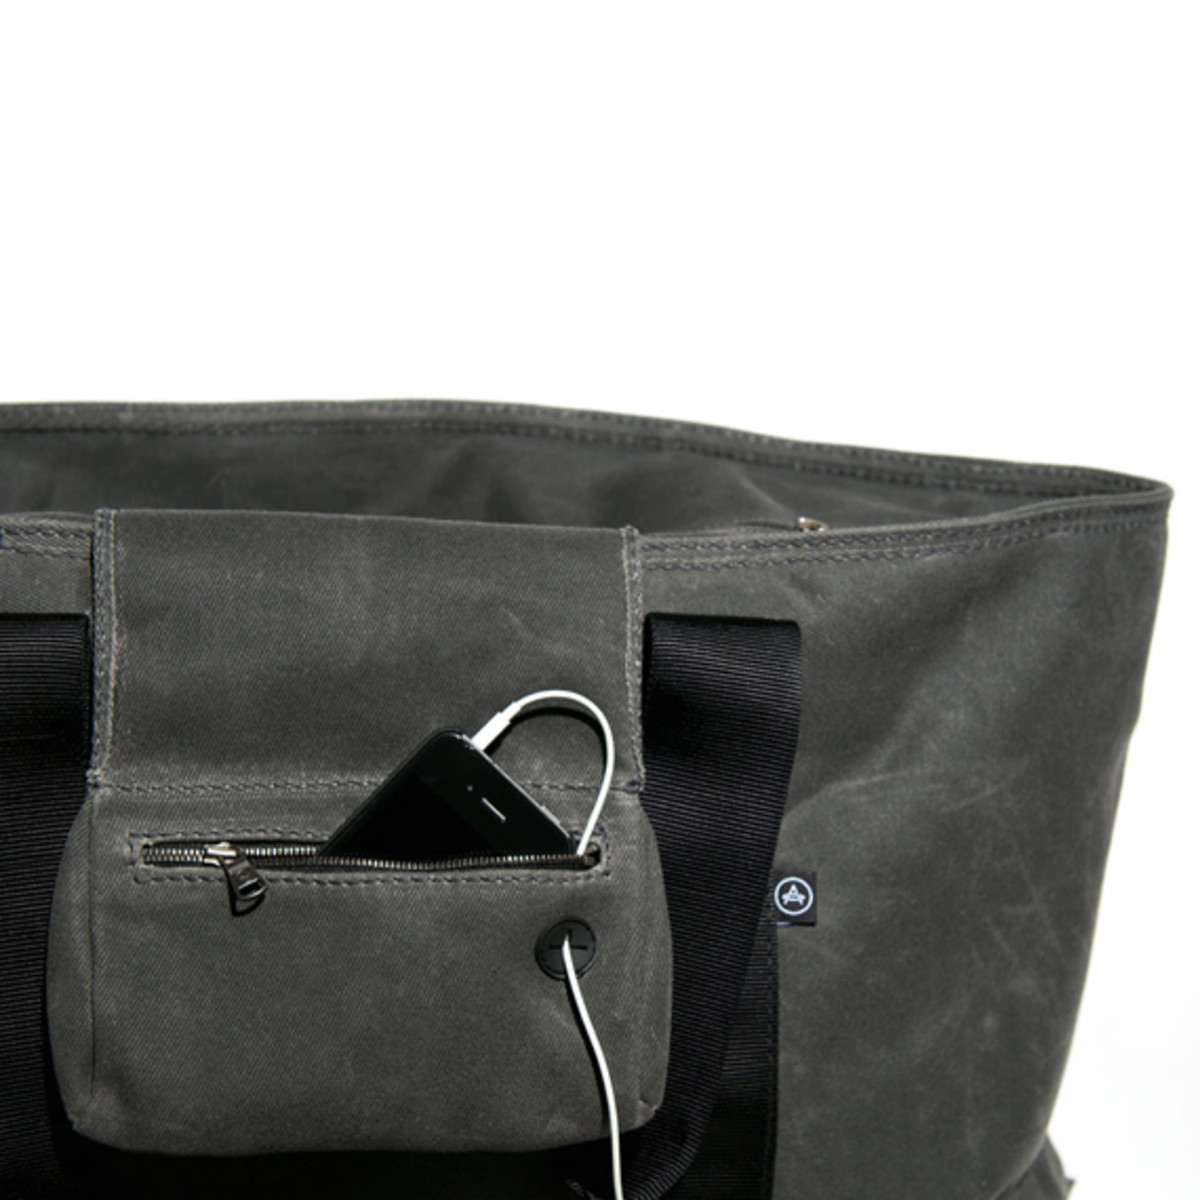 aether-canvas-utility-tote-bag-06